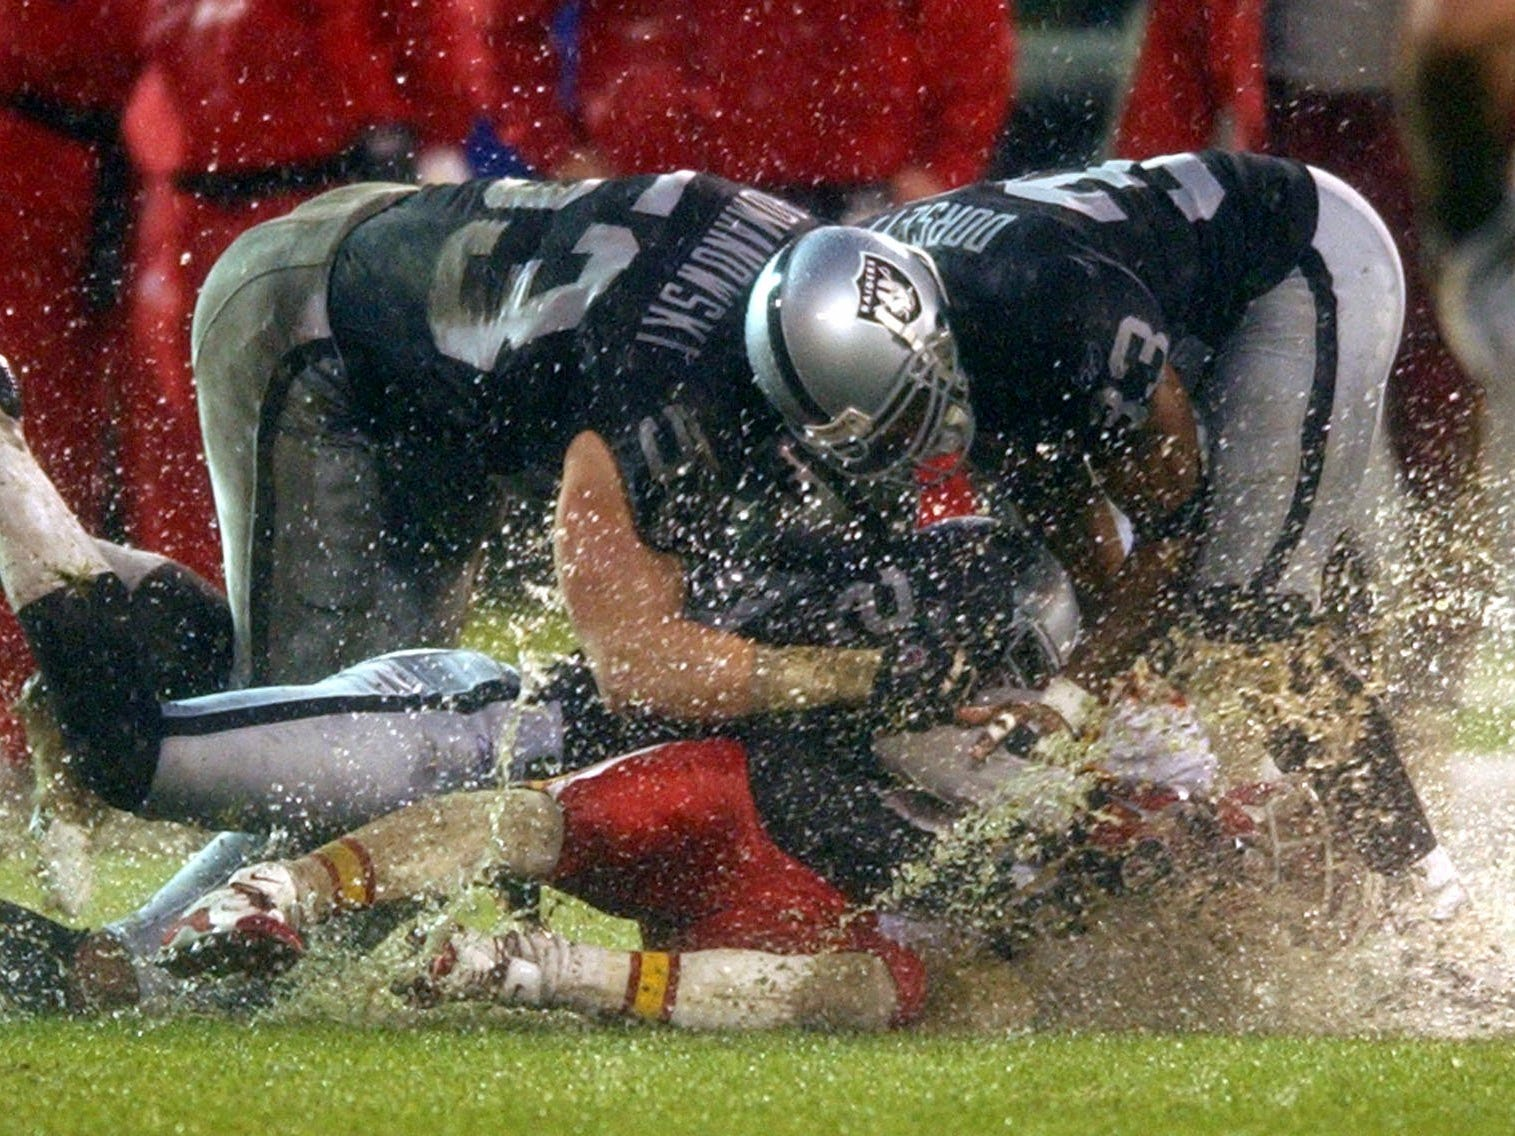 Dec. 28, 2002: Kansas City Chiefs wide receiver Johnnie Morton is smothered by Oakland Raiders defenders Bill Romanowski, Anthony Dorsett, right, and Terrance Shaw after catching a pass during the fourth quarter in Oakland. The Raiders won the game, 24-0.